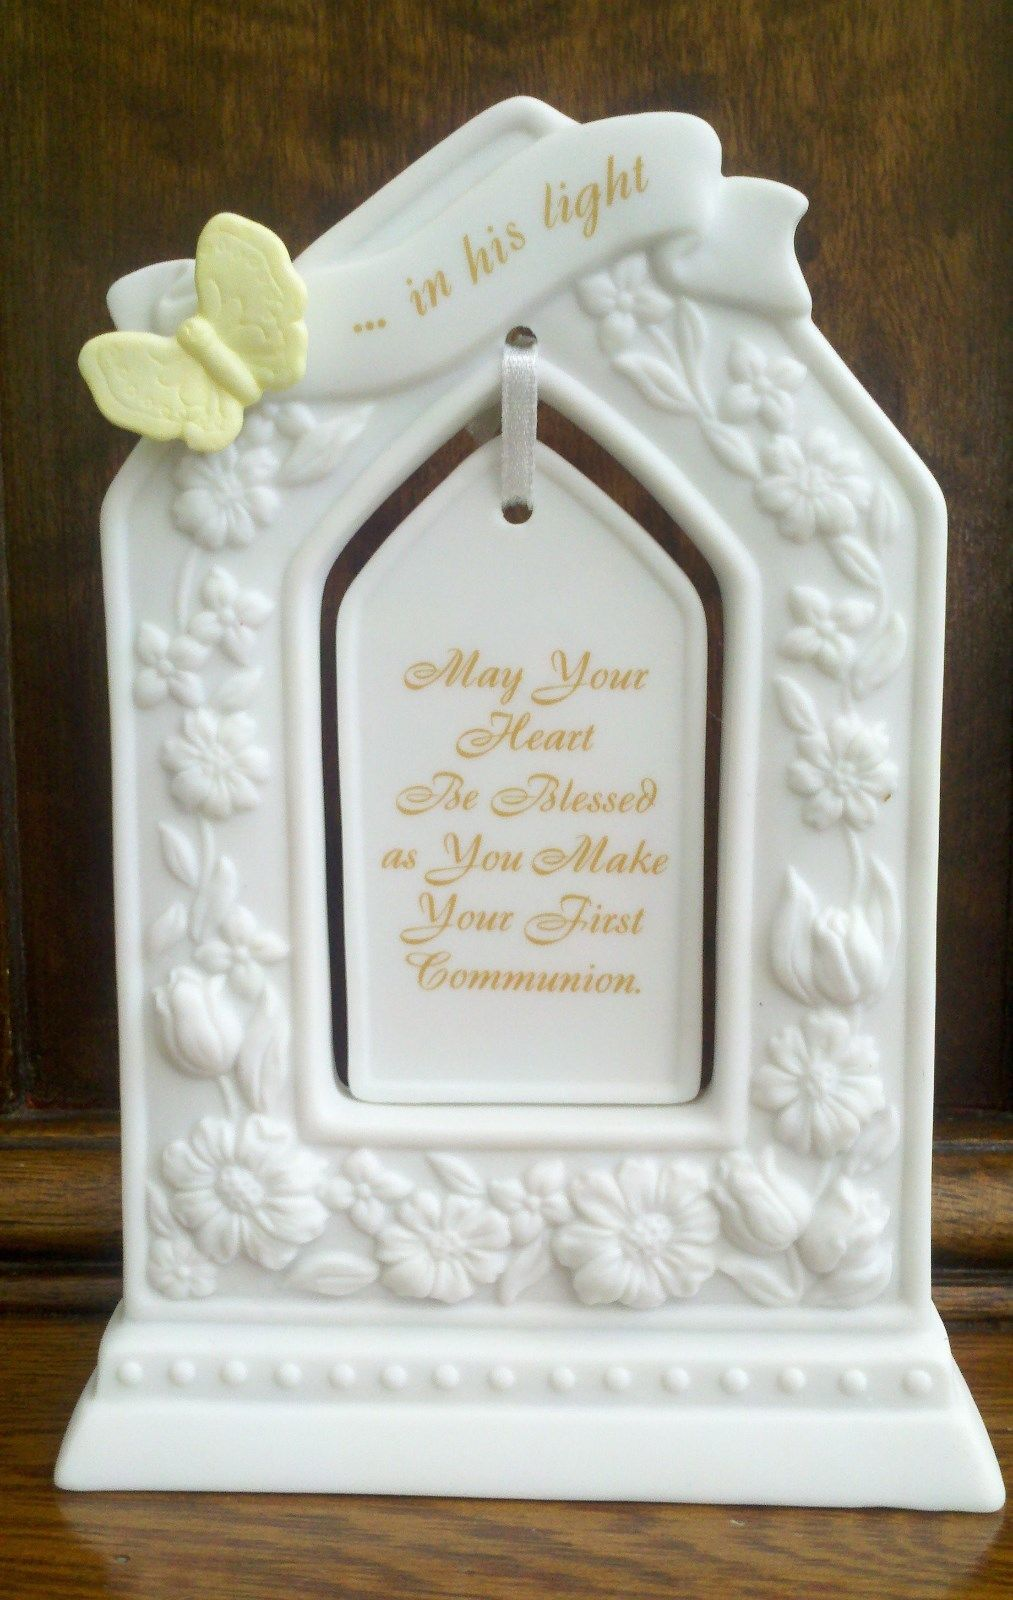 Christian Cake Toppers - Shop Christian Cake Toppers Online